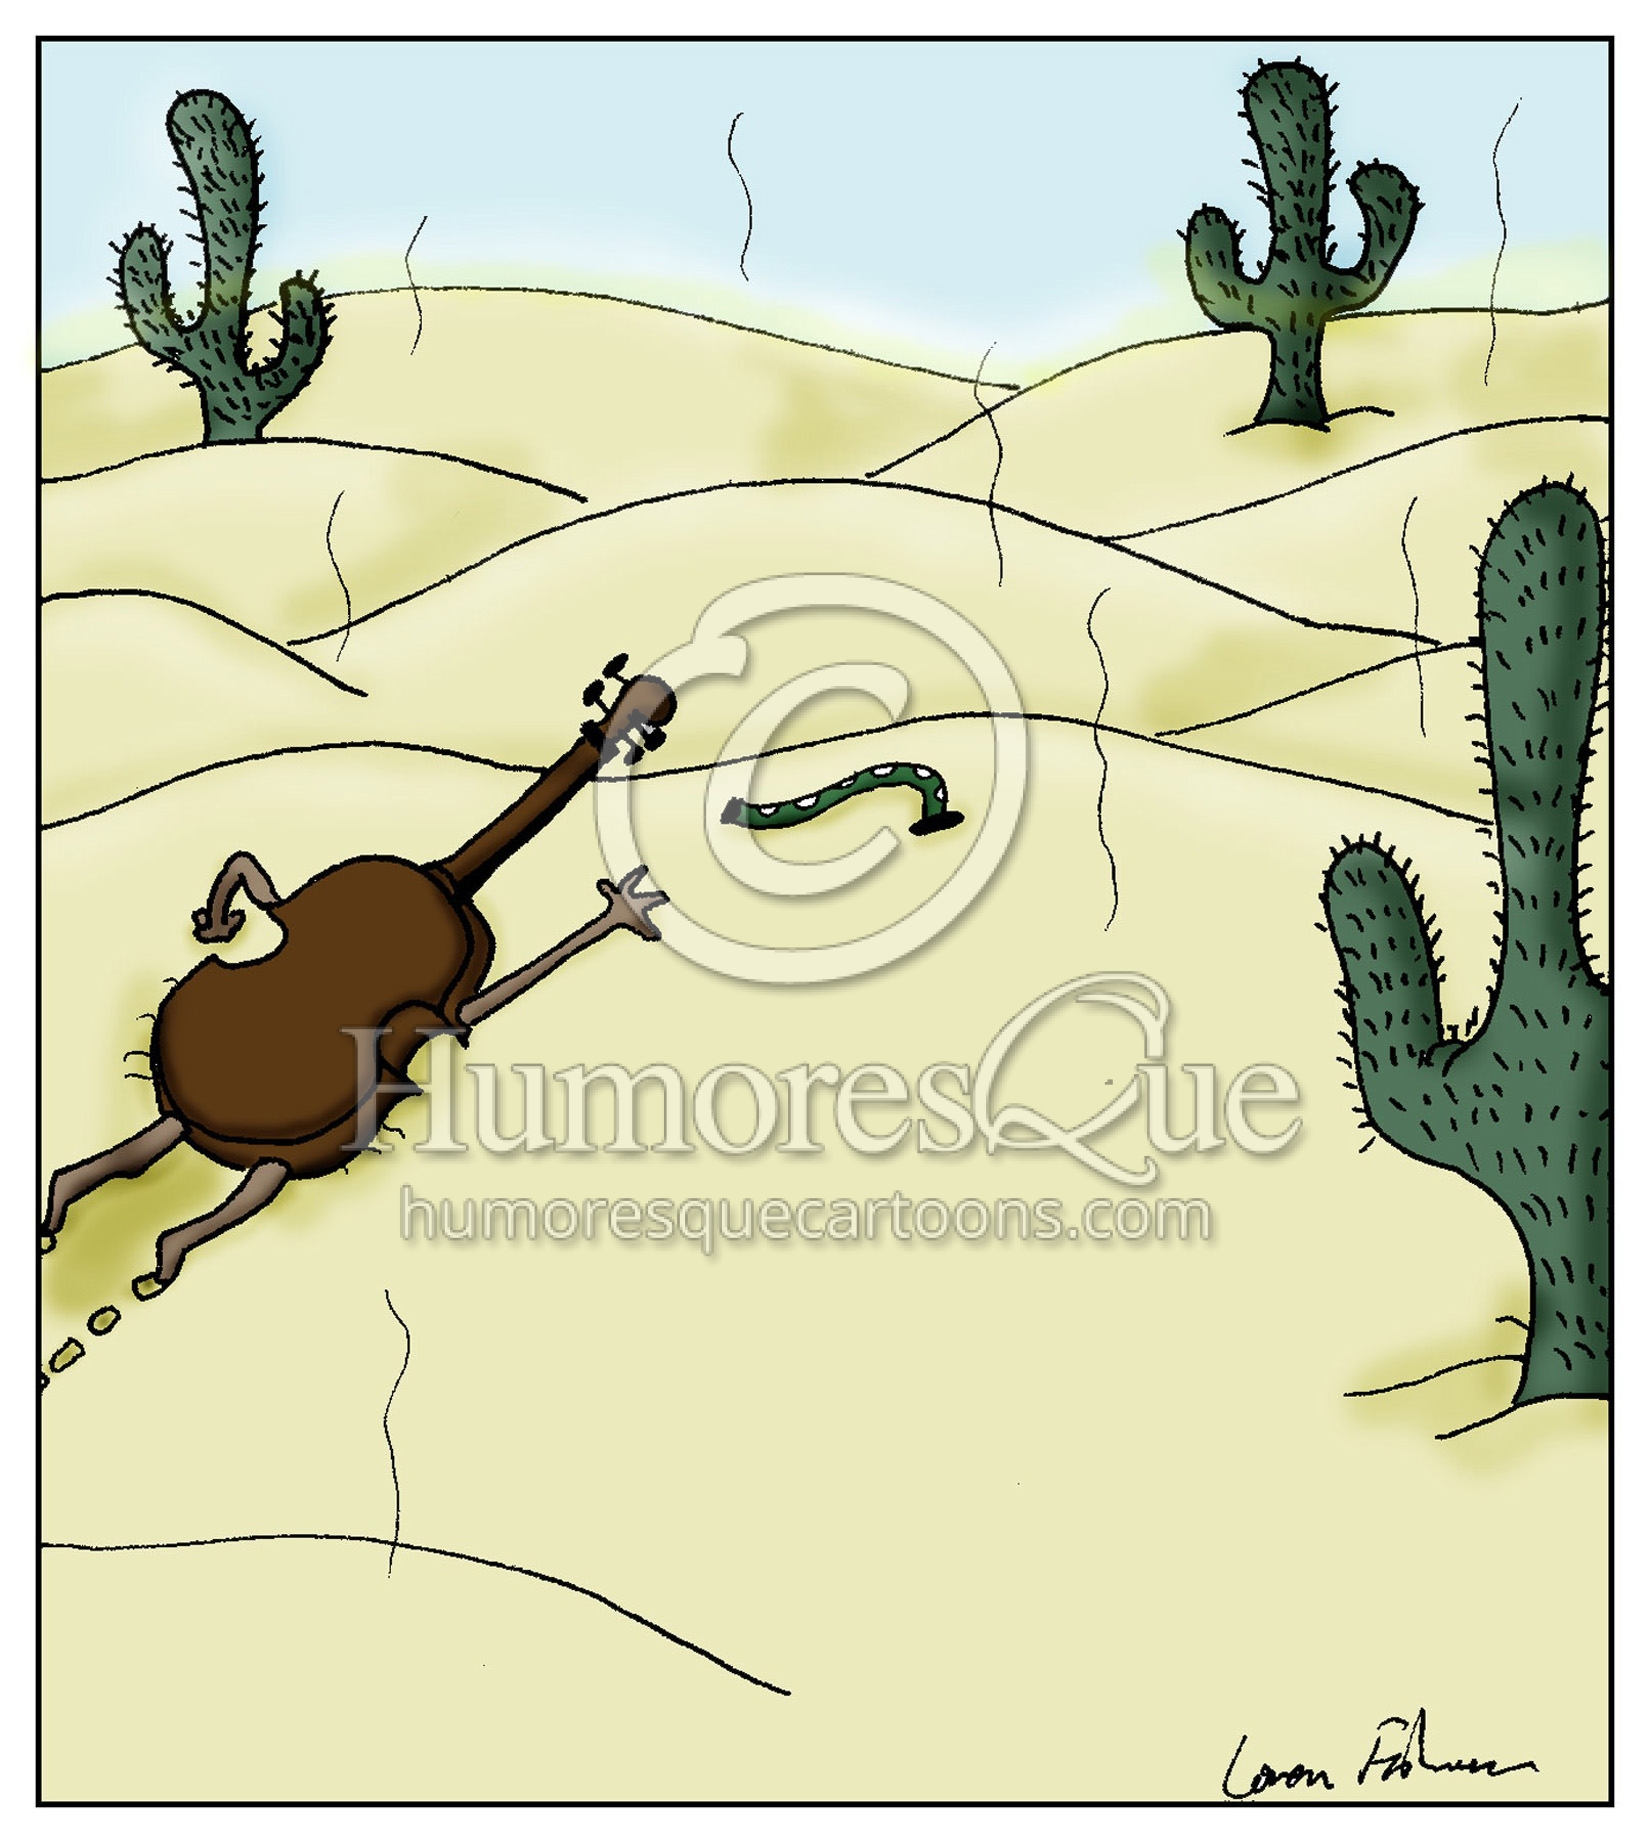 violin in the desert crawling toward a dampit cartoon